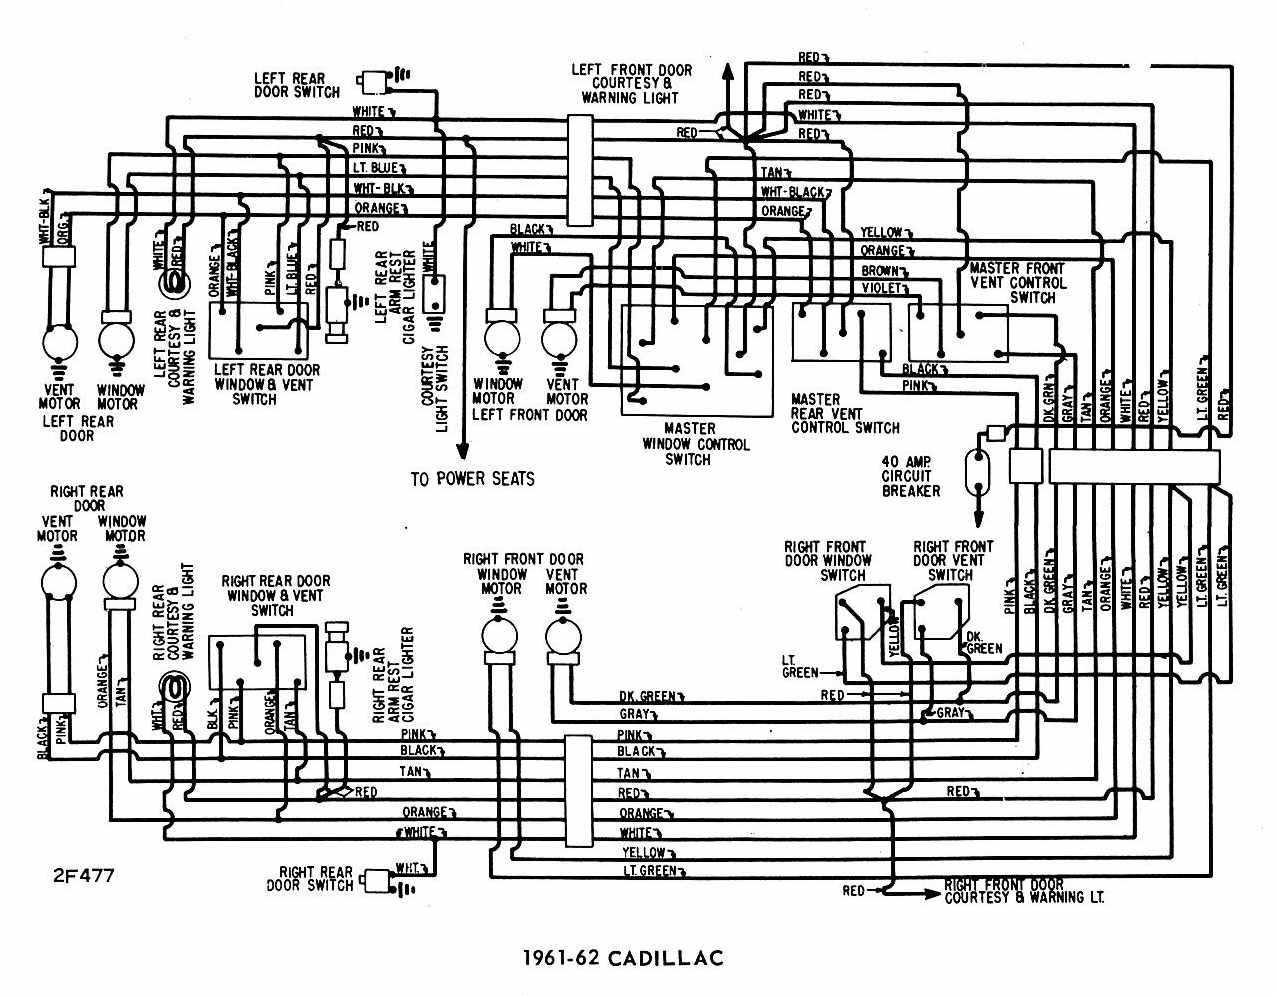 Custom Vehicle Wiring Colors Complete Diagrams Police 1969 Cadillac Diagram Schematic U2022 Rh Detox Design Co Connectors